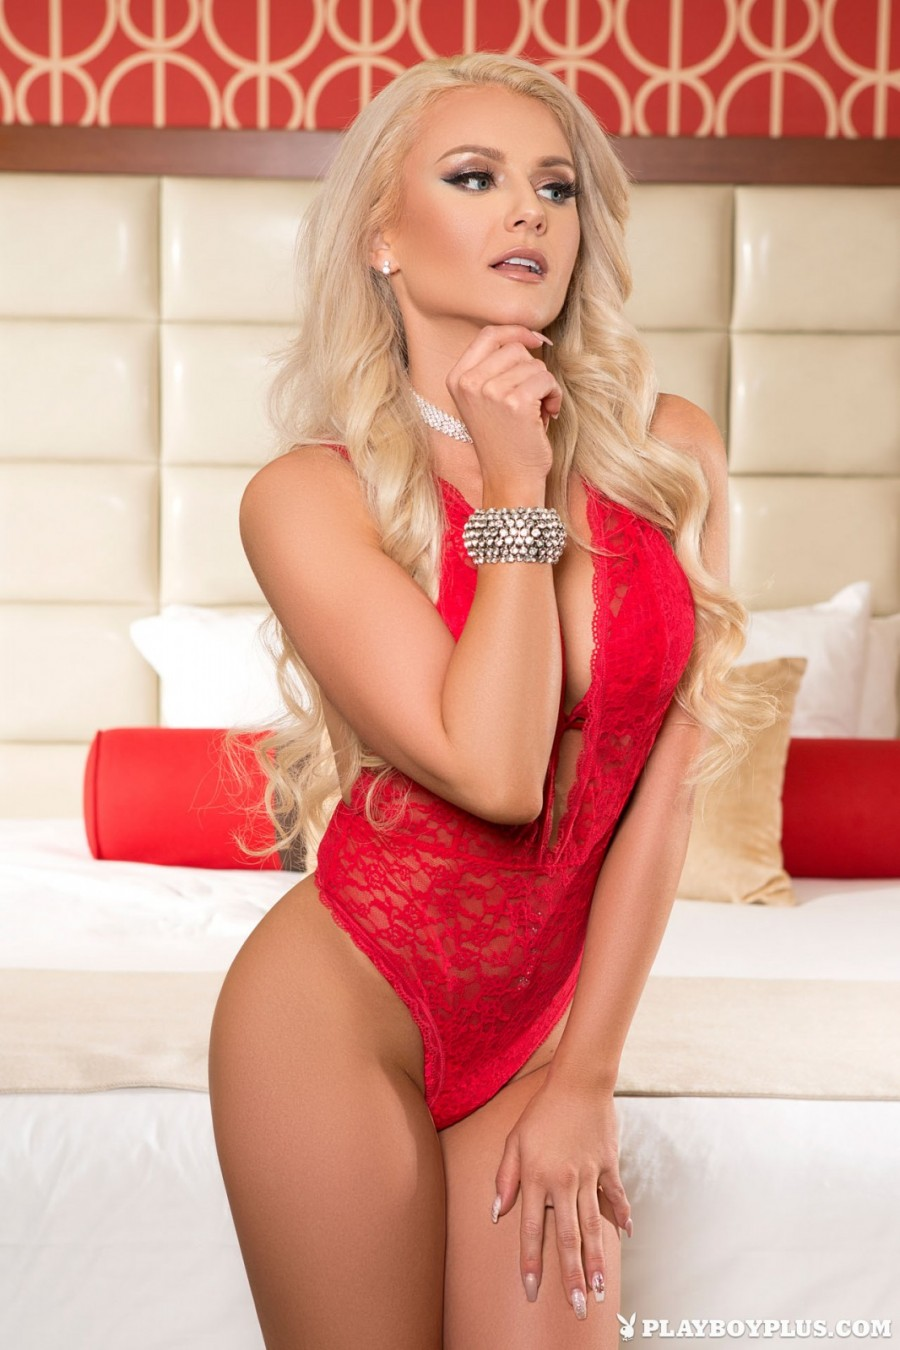 Bombshell blonde in lingerie